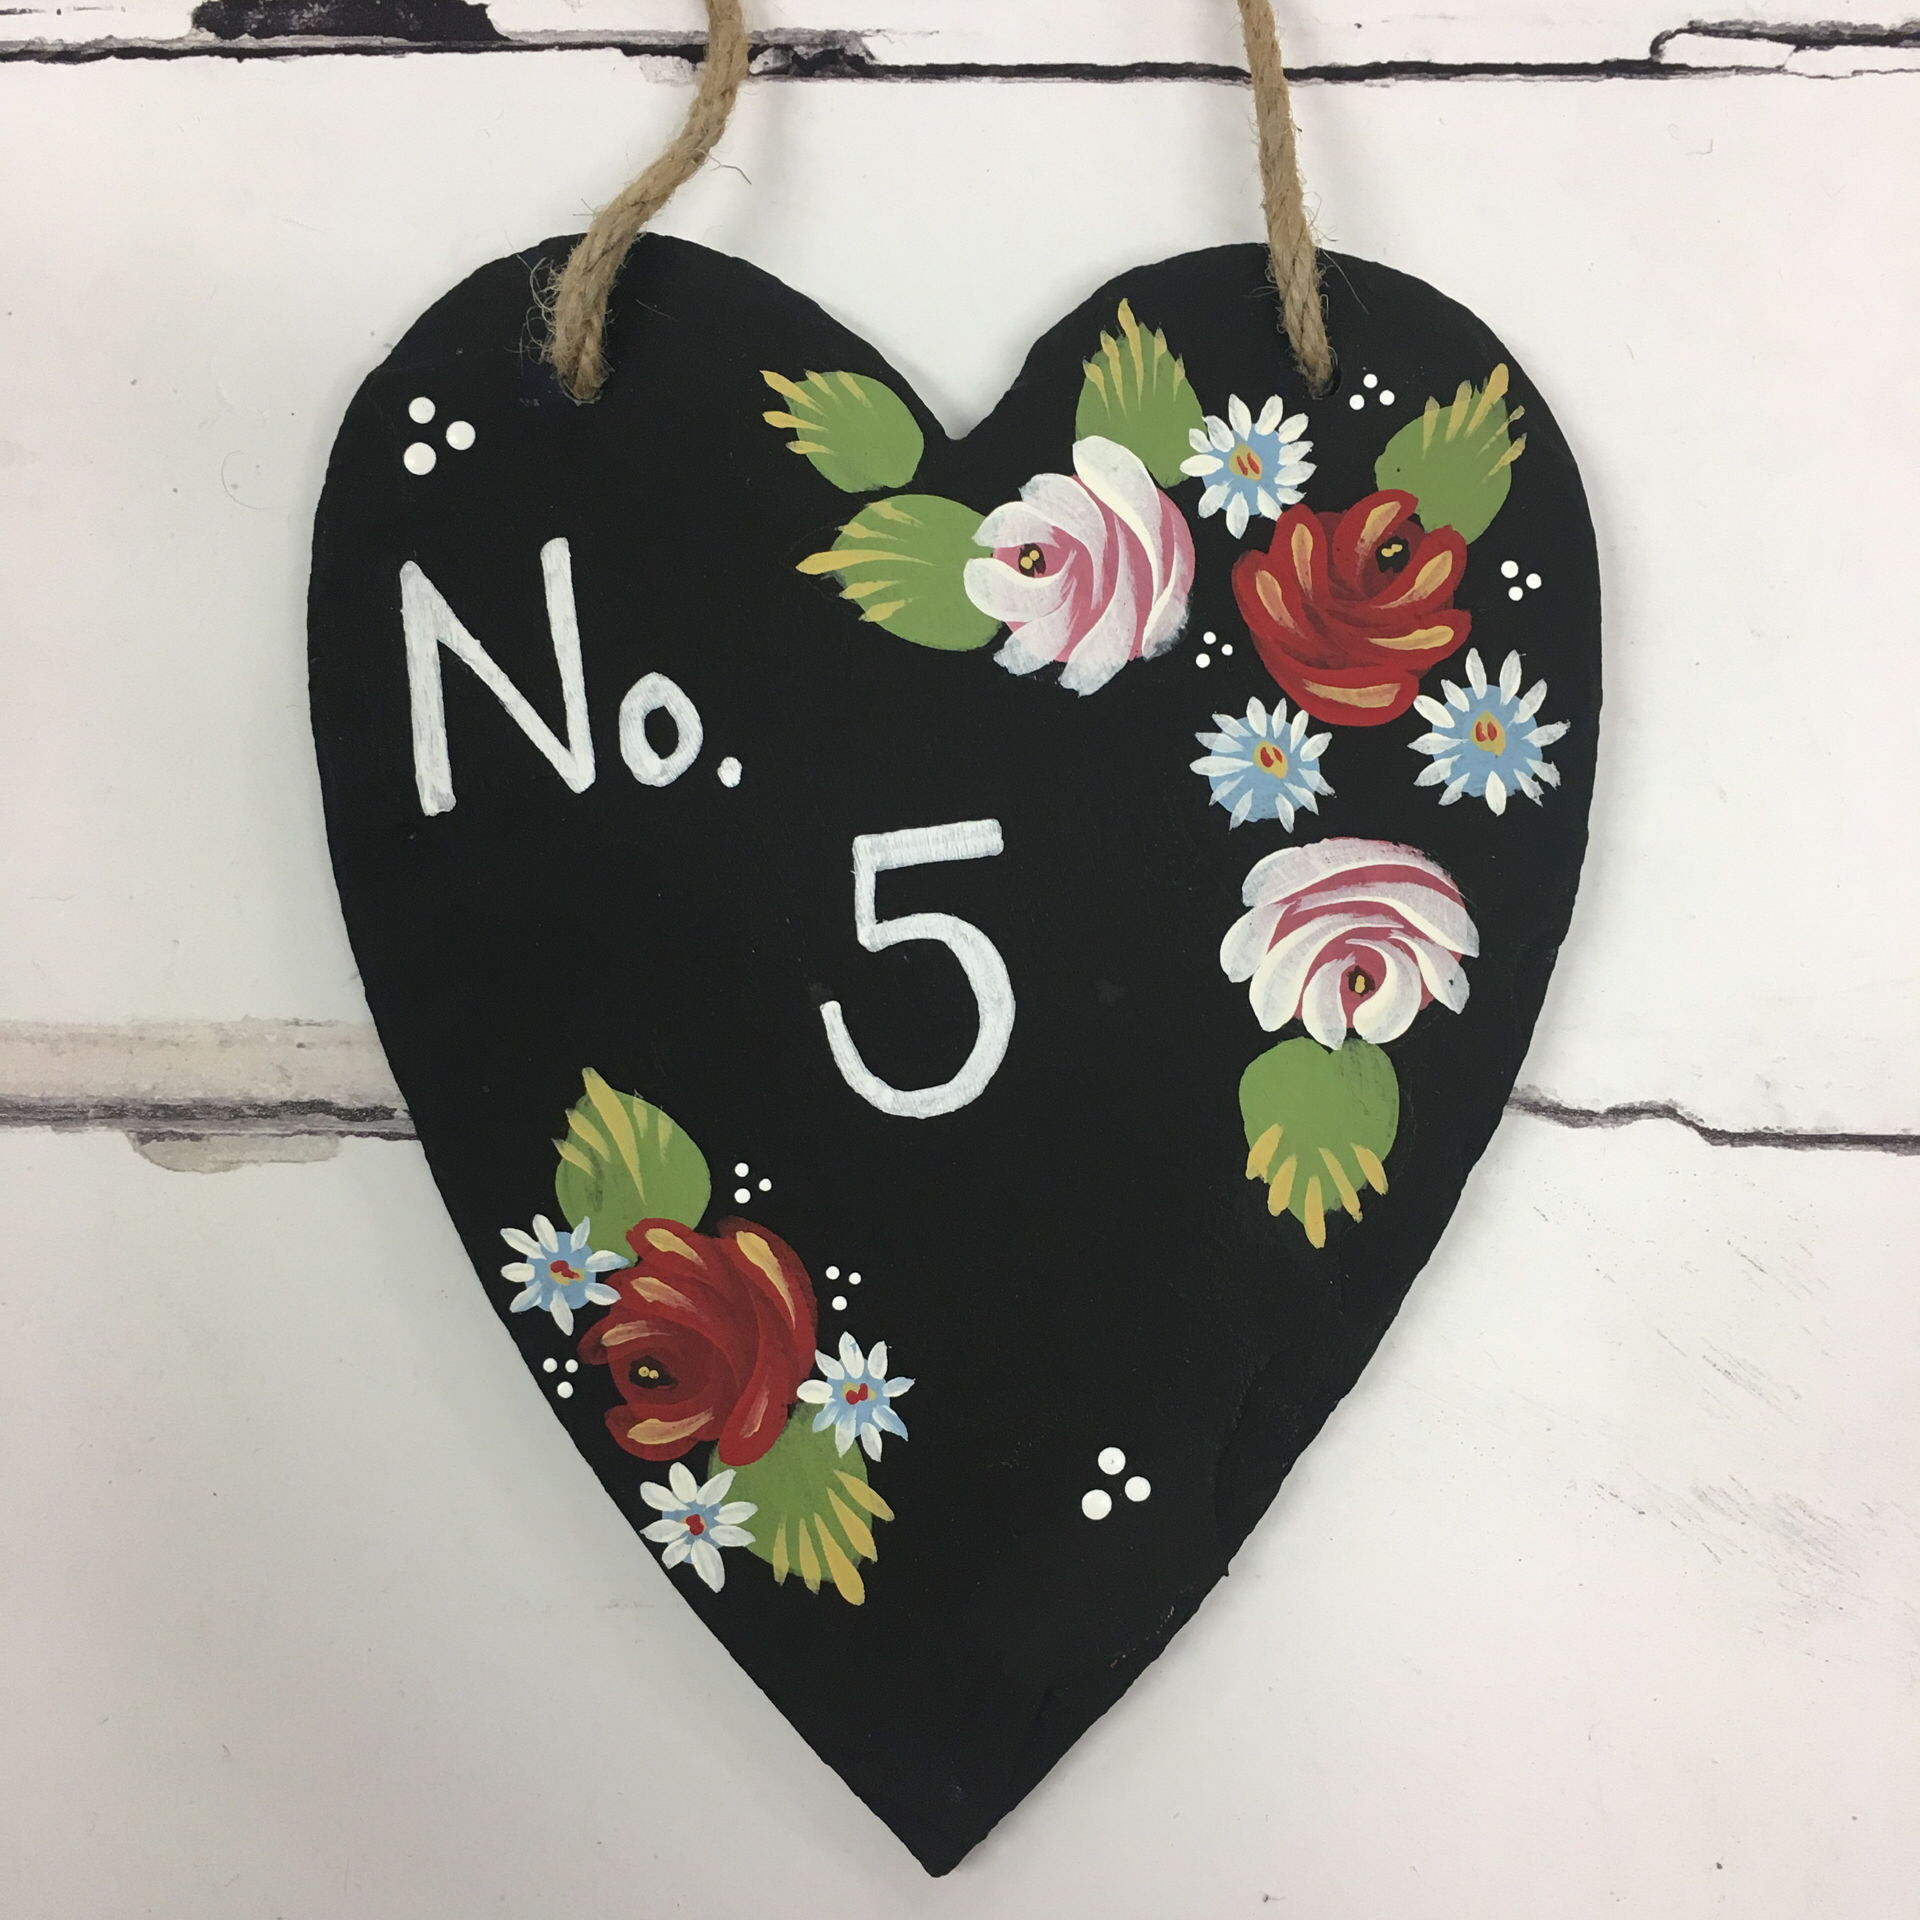 Handpainted canal boat art inspired house number plaque  It's all